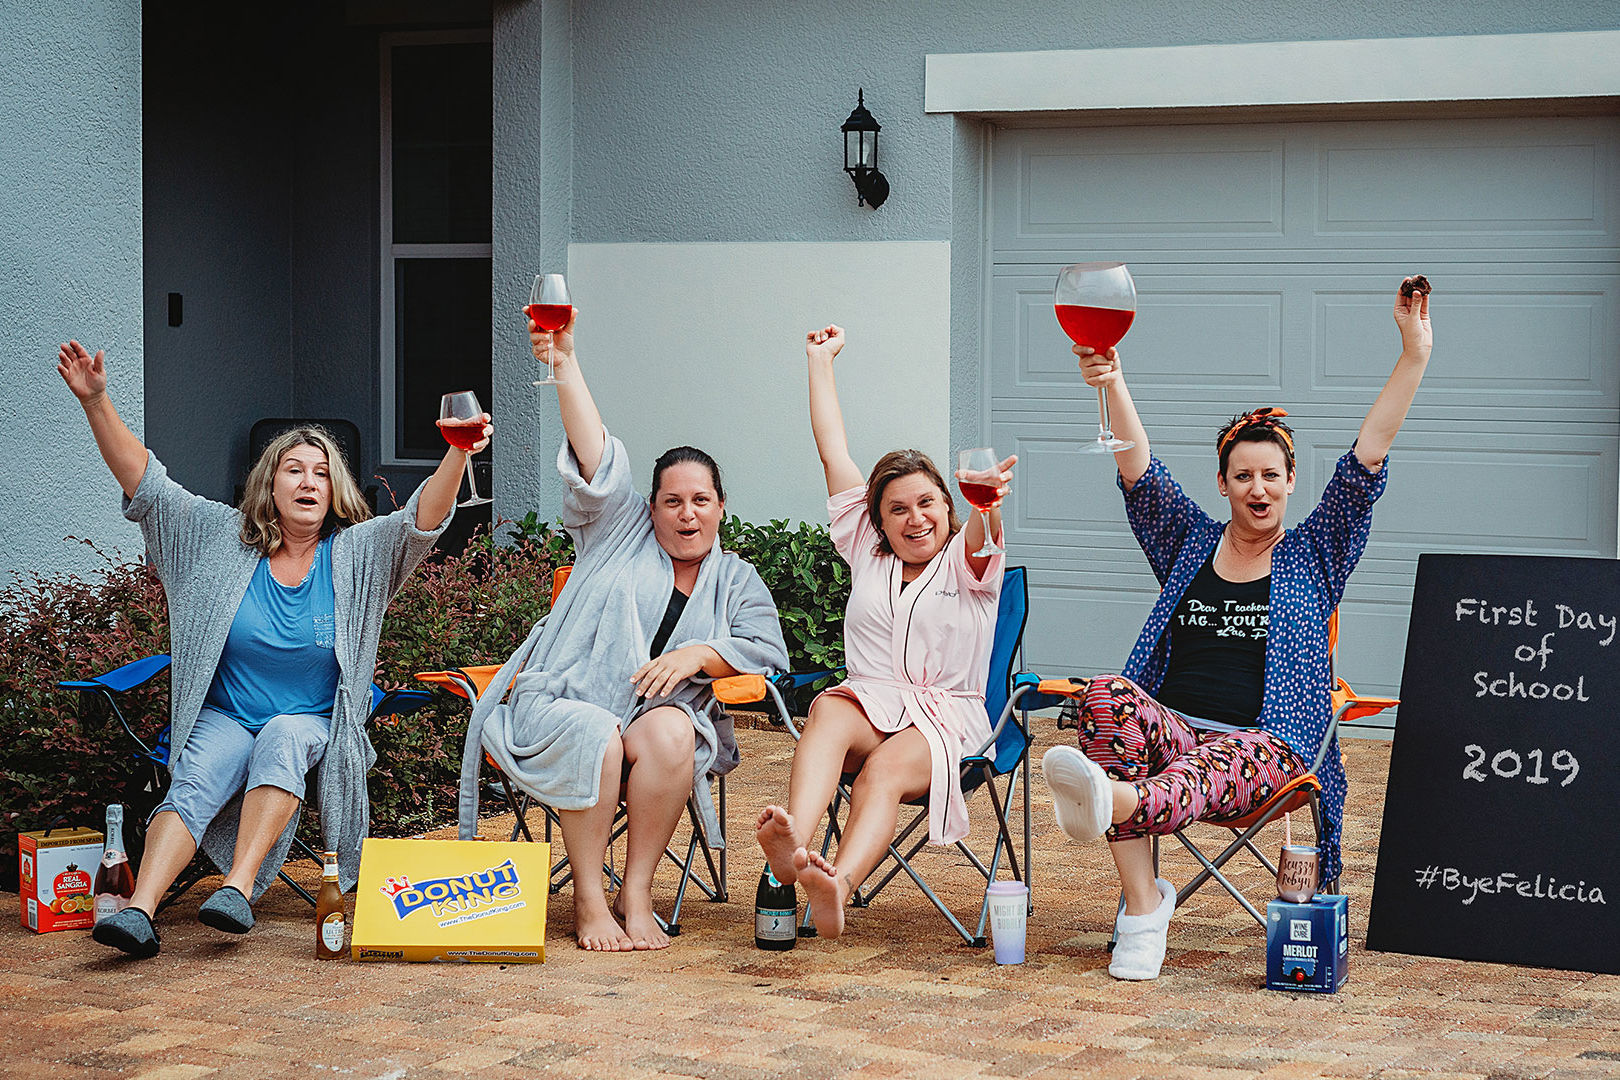 These Florida Moms Celebrated Back-to-School in Epic Fashion